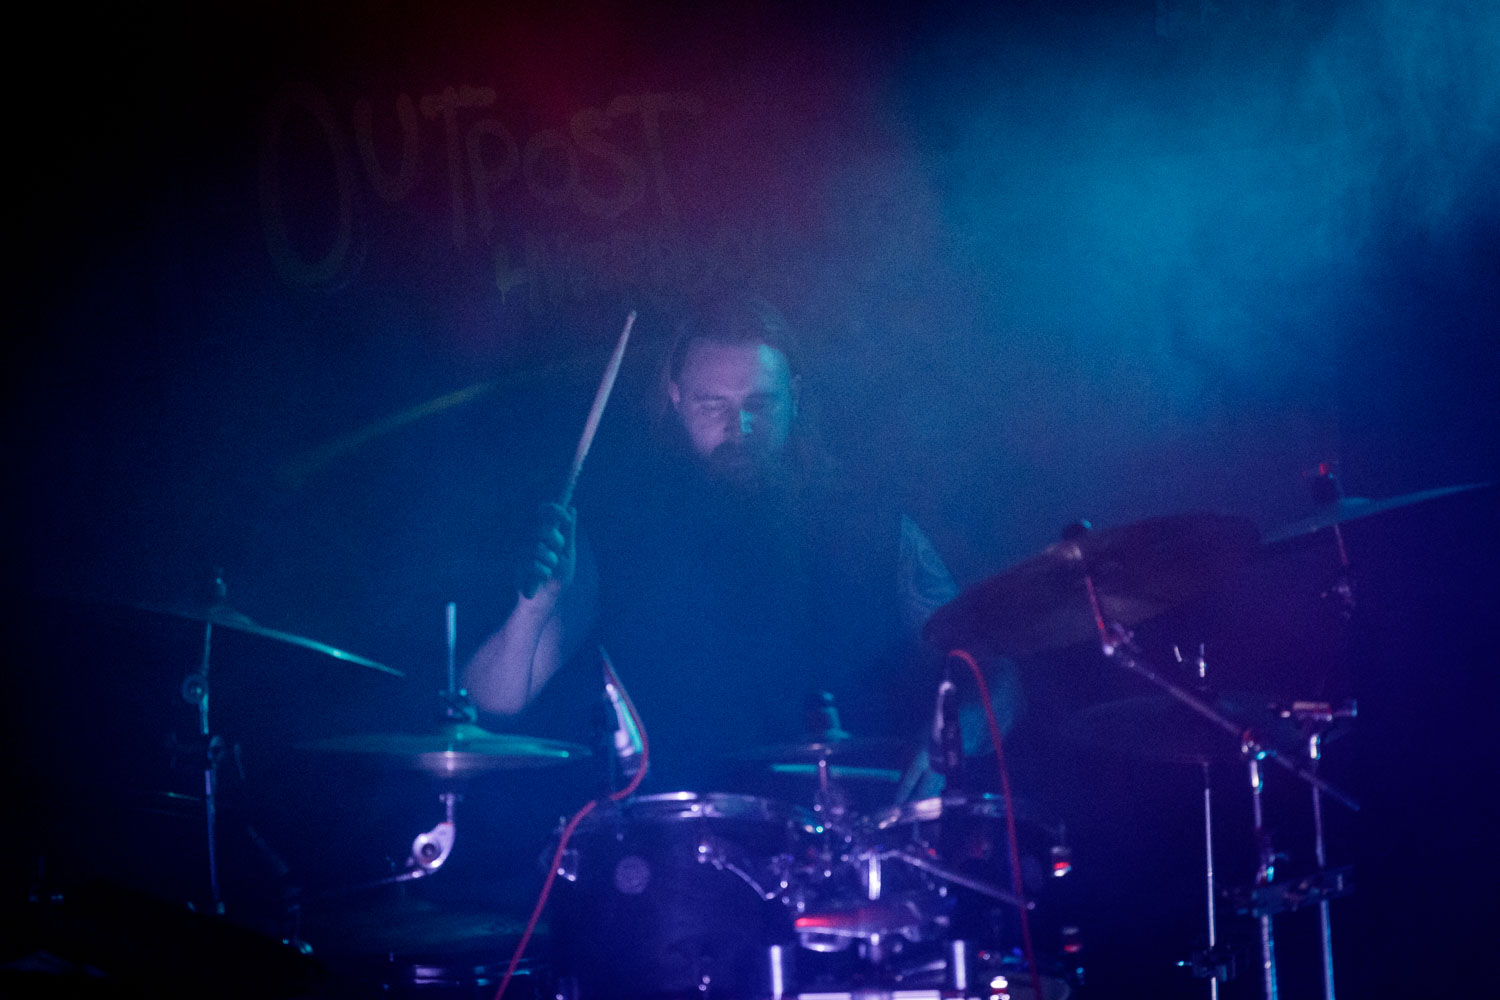 The Infernal Sea at The Outpost in Liverpool on July 11th 2019